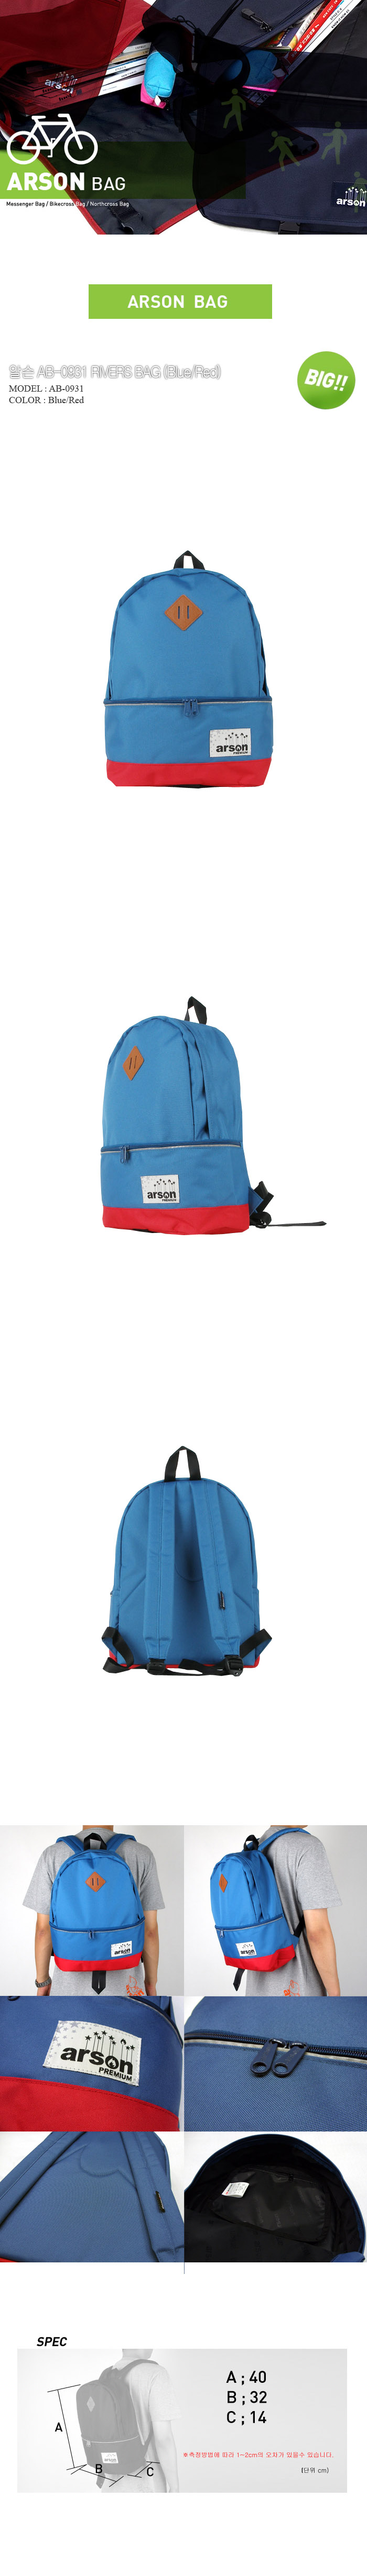 [ ARSON ] AB-0931 (Blue/Red)/Backpack School Bag